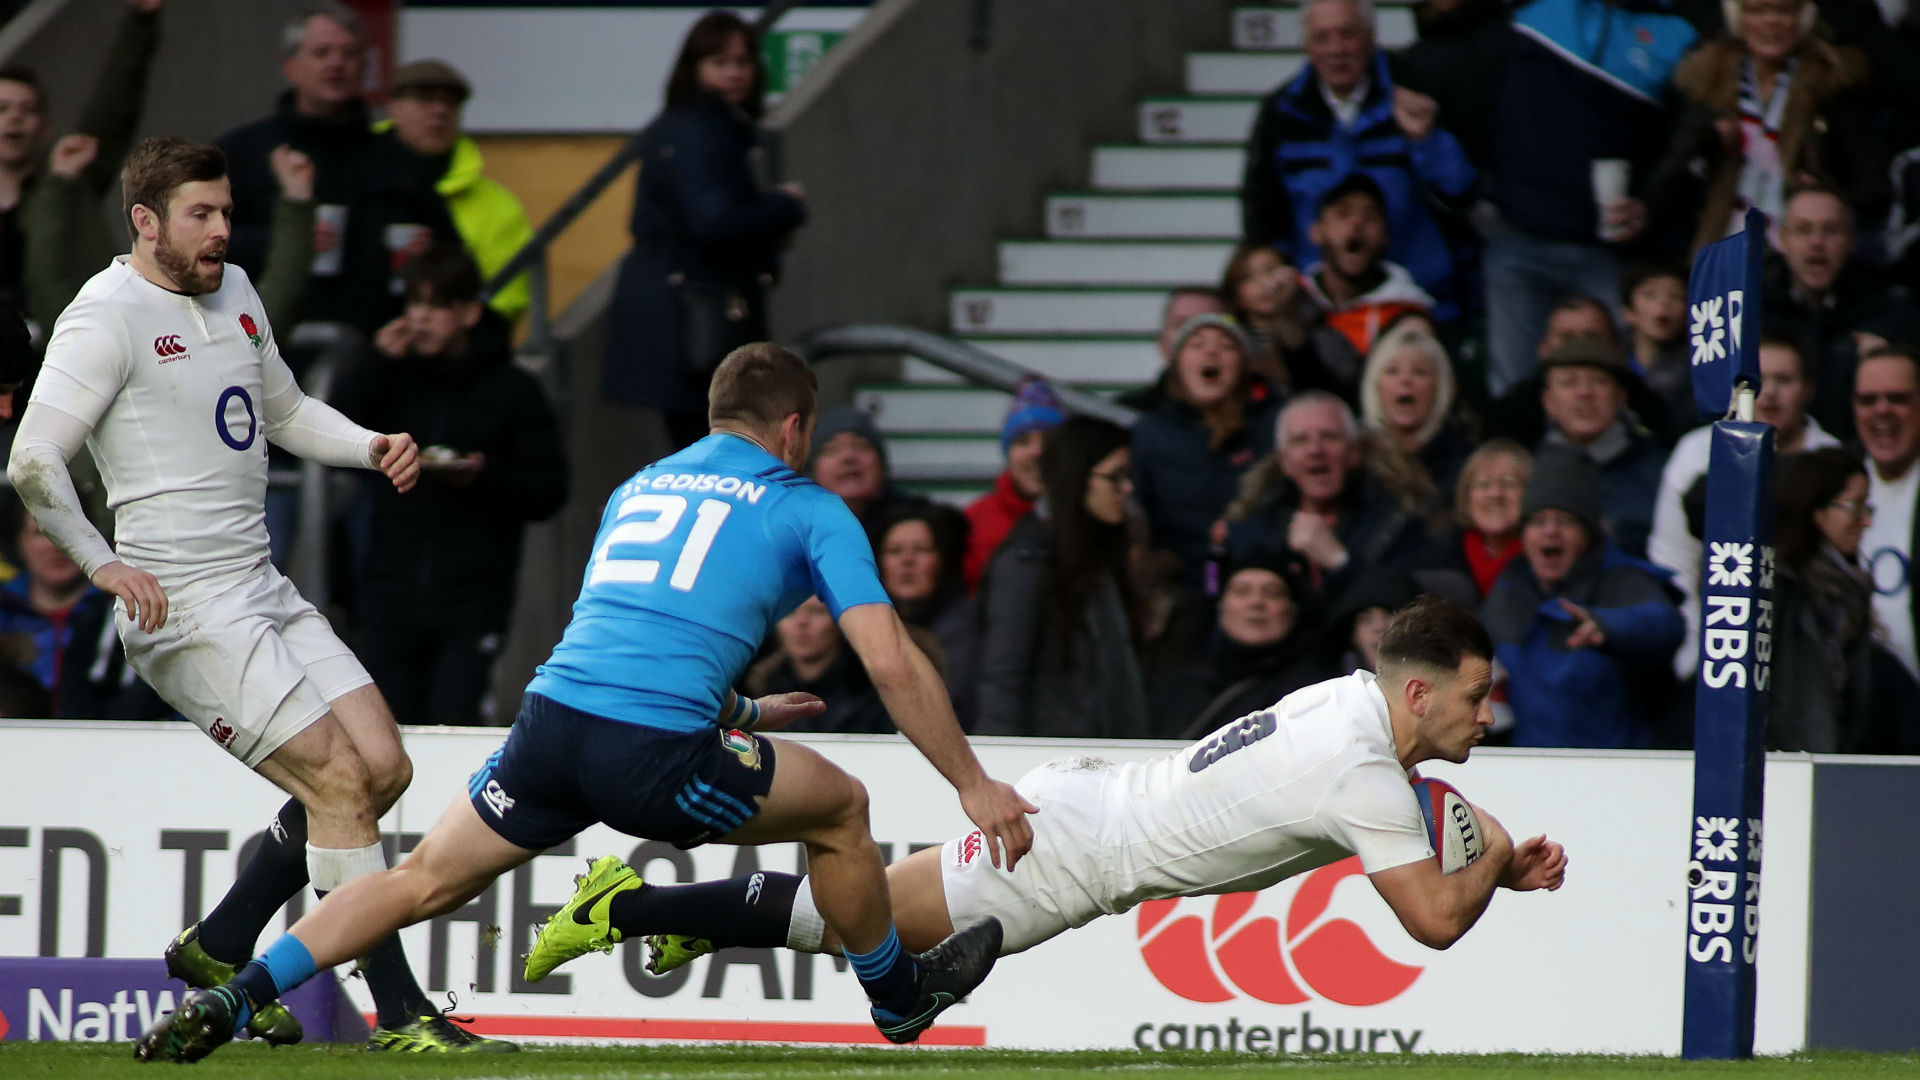 Who would you pick in a combined France-Ireland XV